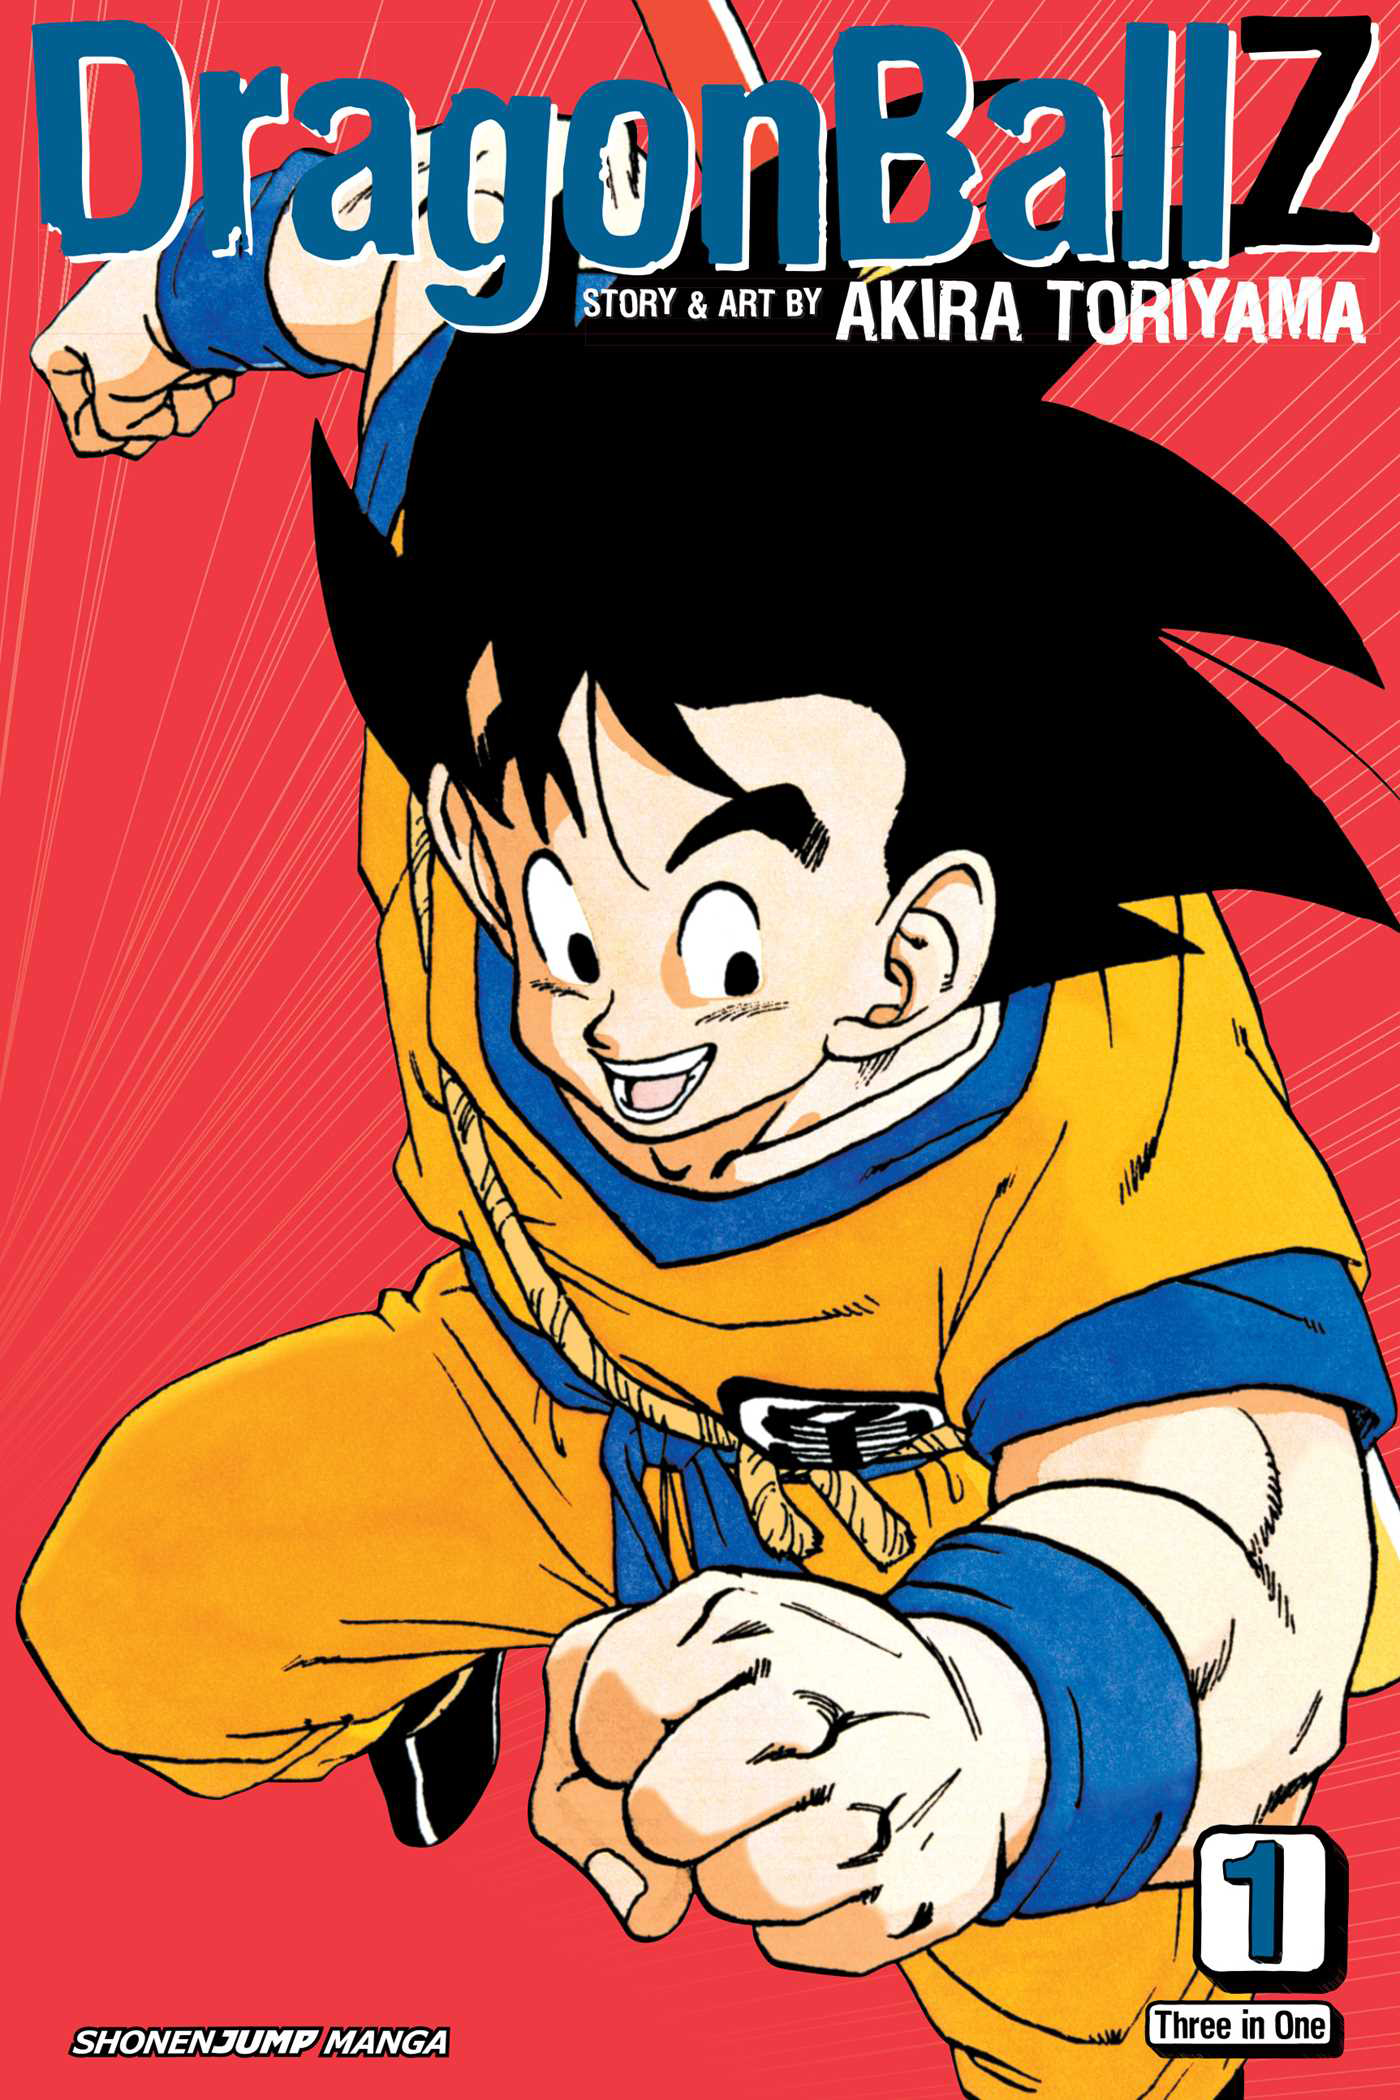 DRAGON BALL Z VIZBIG ED TP VOL 01 (OF 9) (CURR PTG)